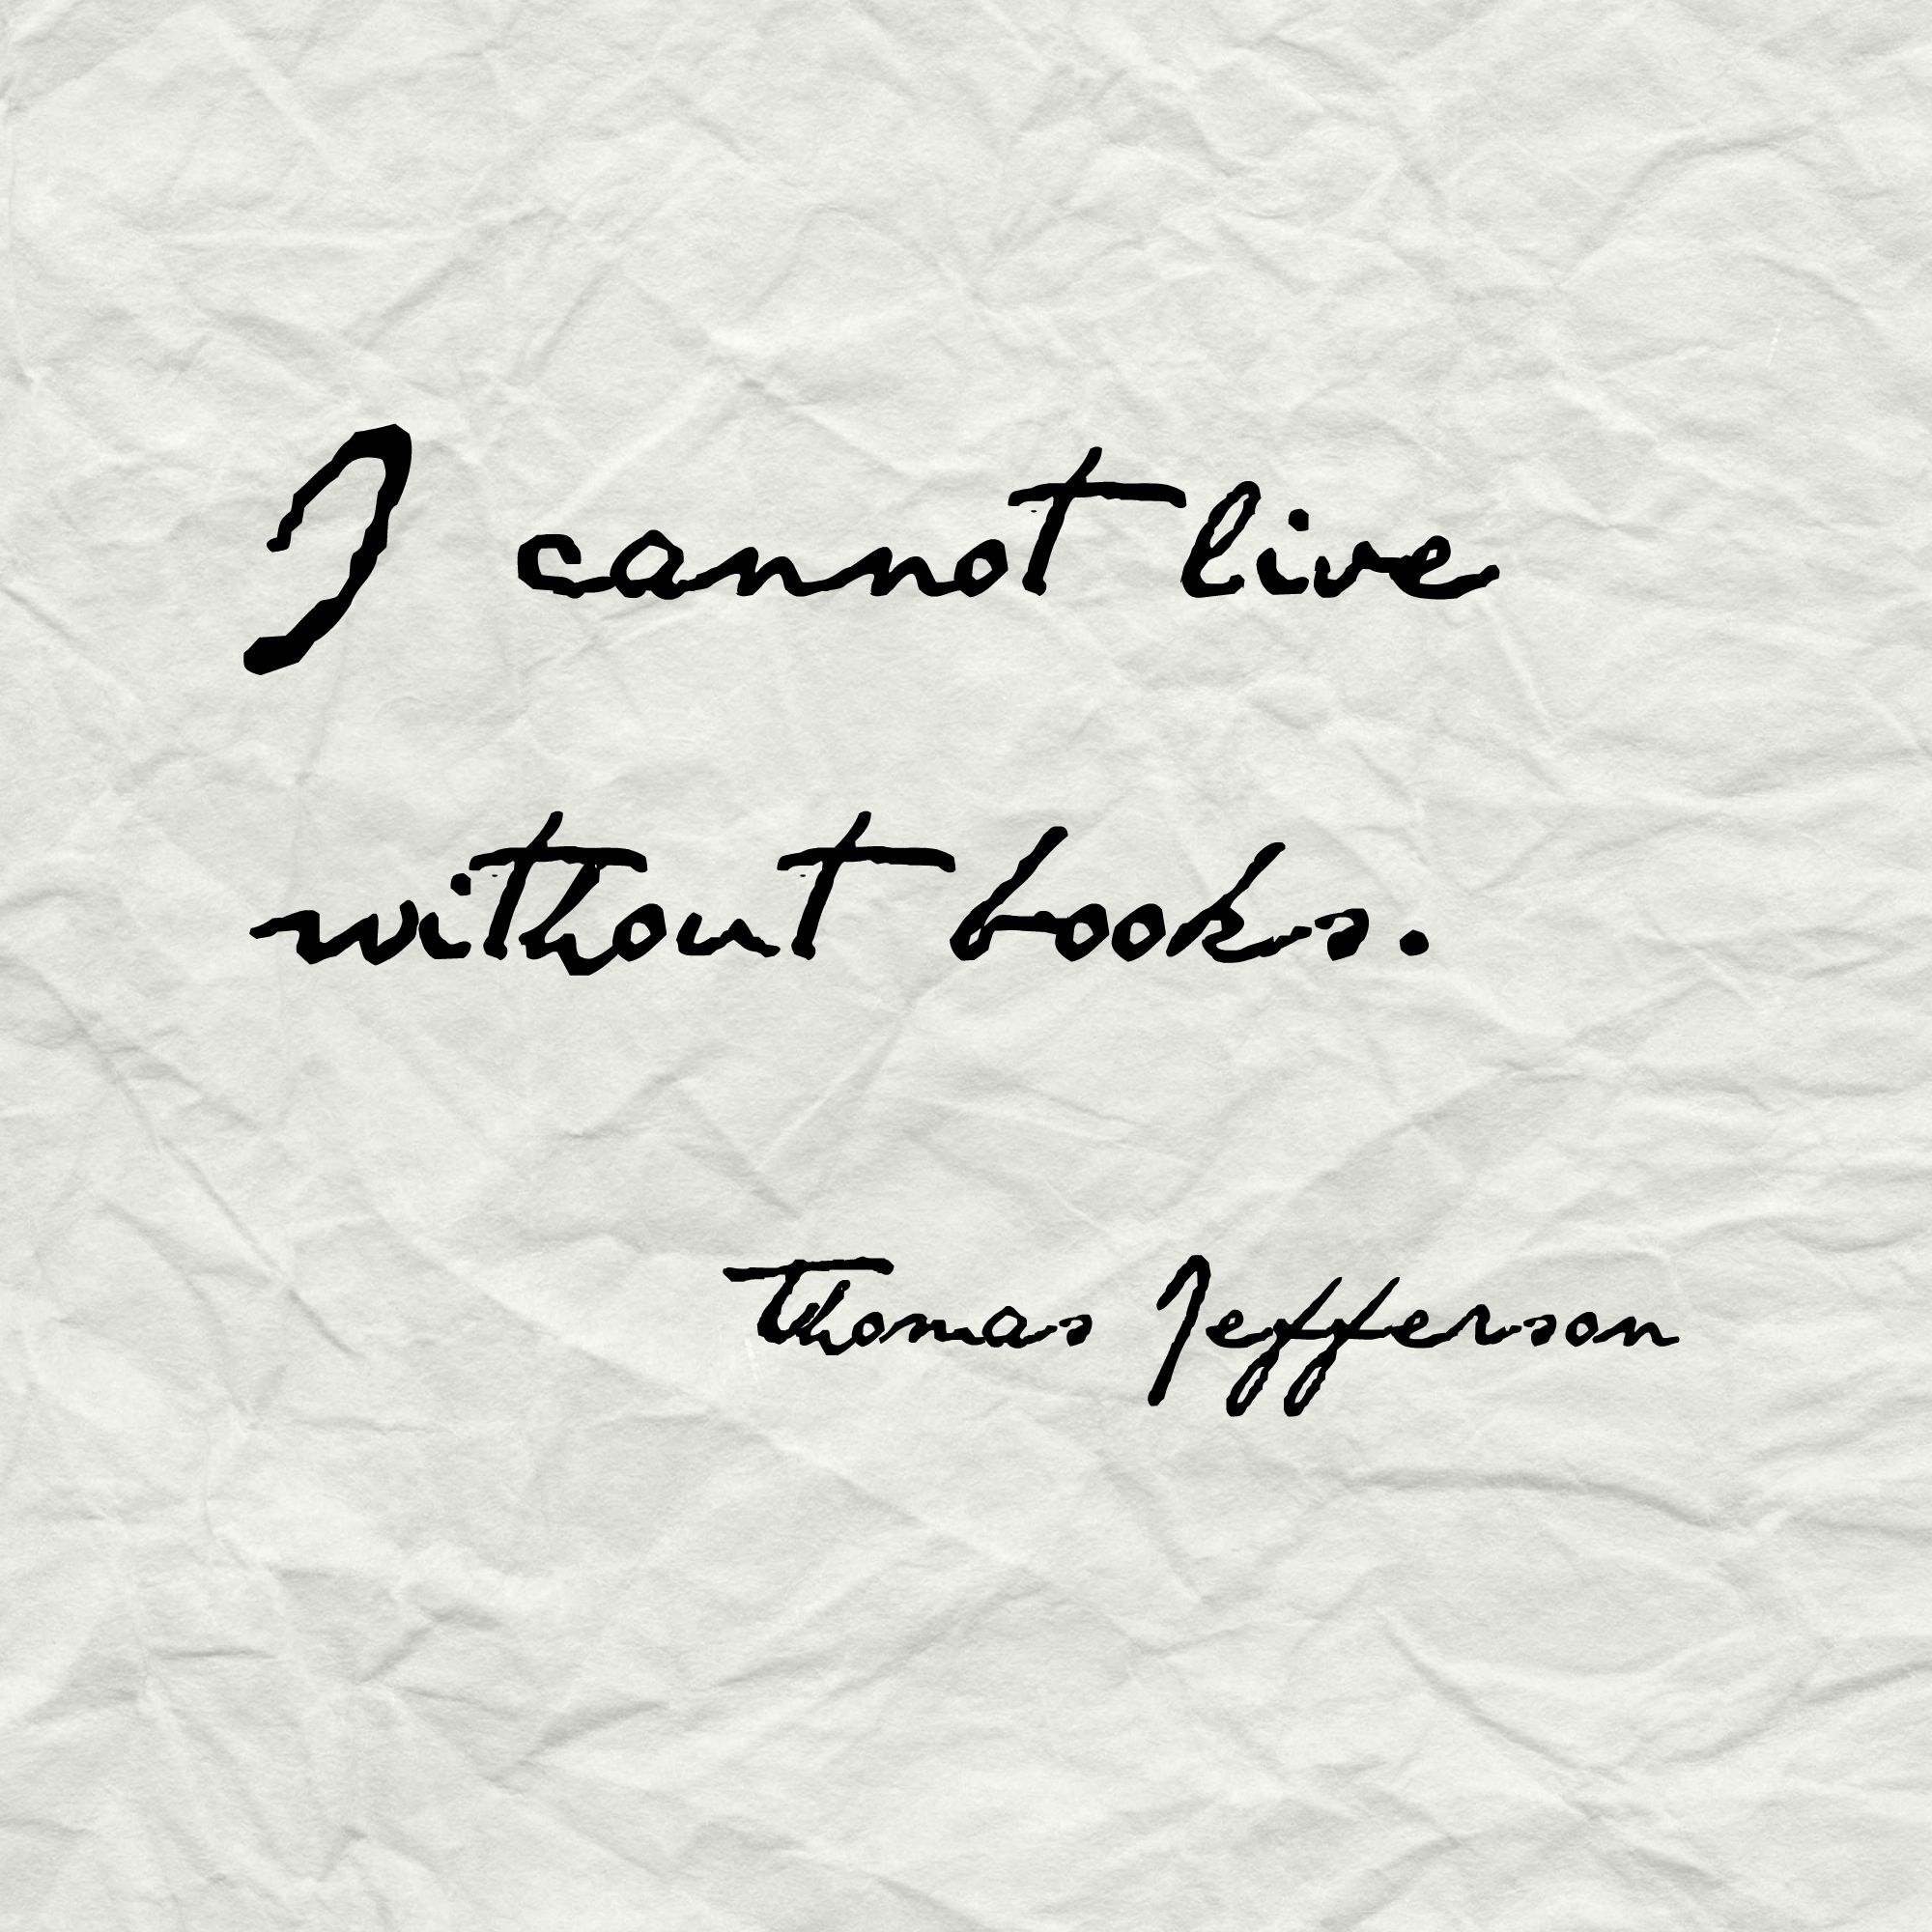 I Cannot Live Without Books. Thomas Jefferson #quotes #books